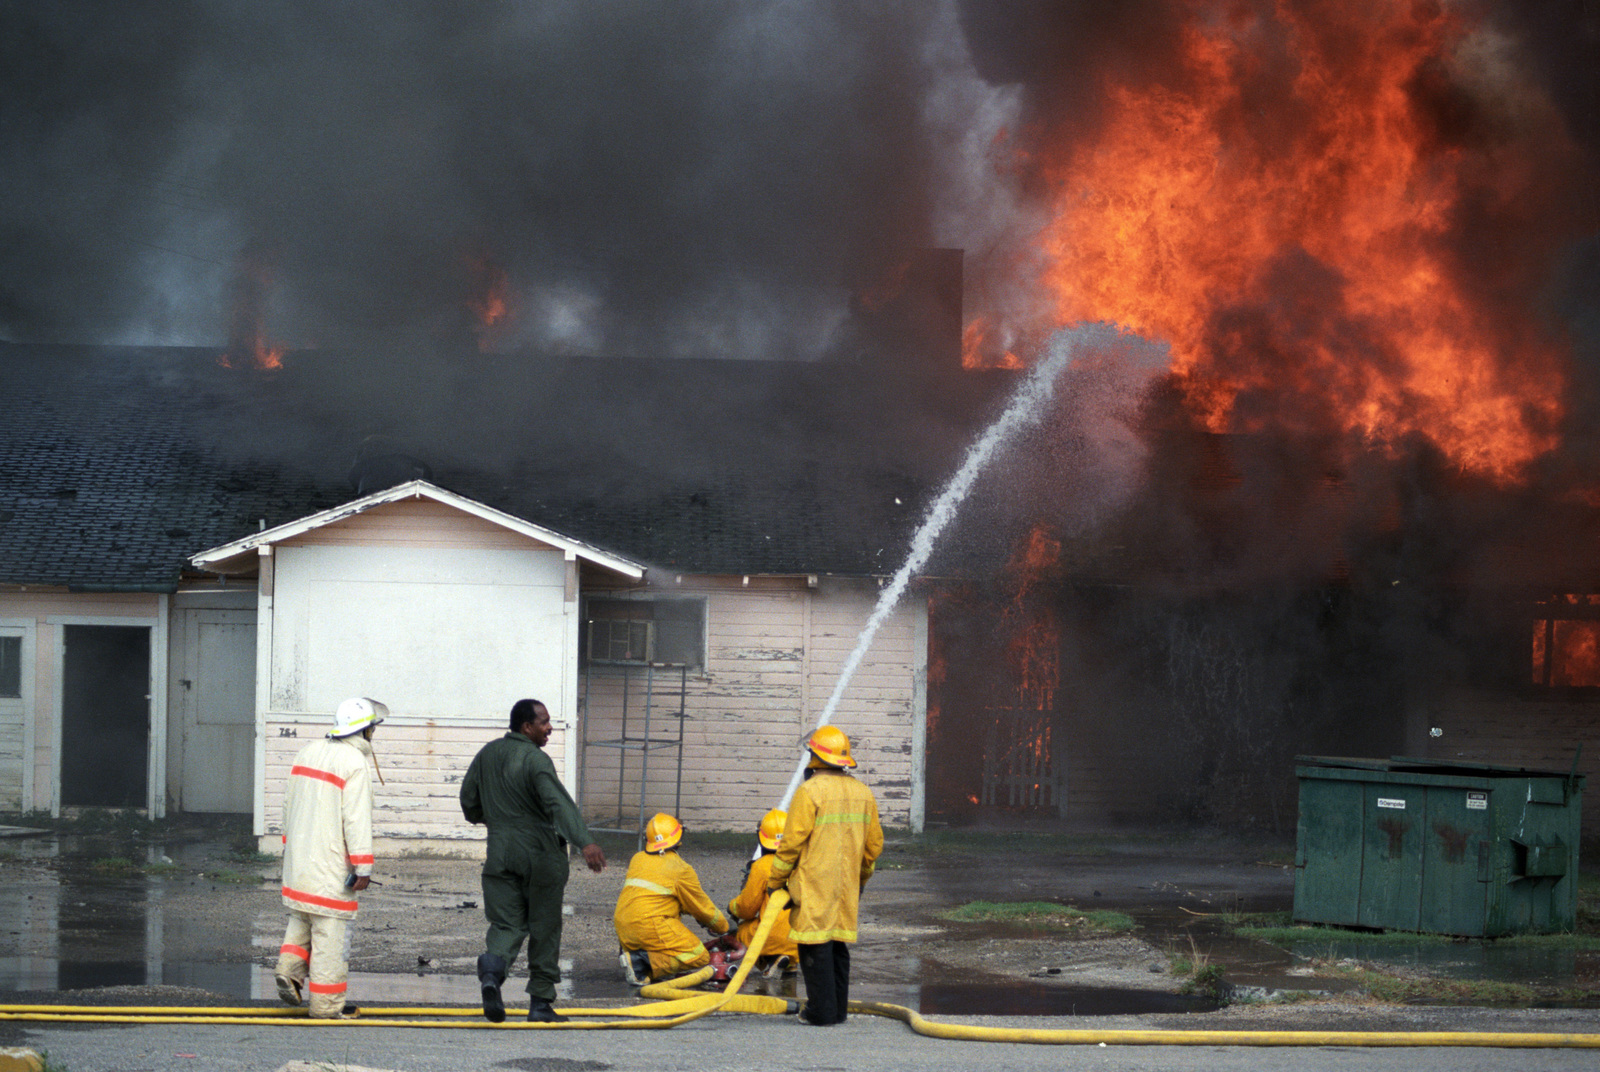 Firefighters spray water on the recreation services building after it was intentionally set ablaze during a firefighting training exercise